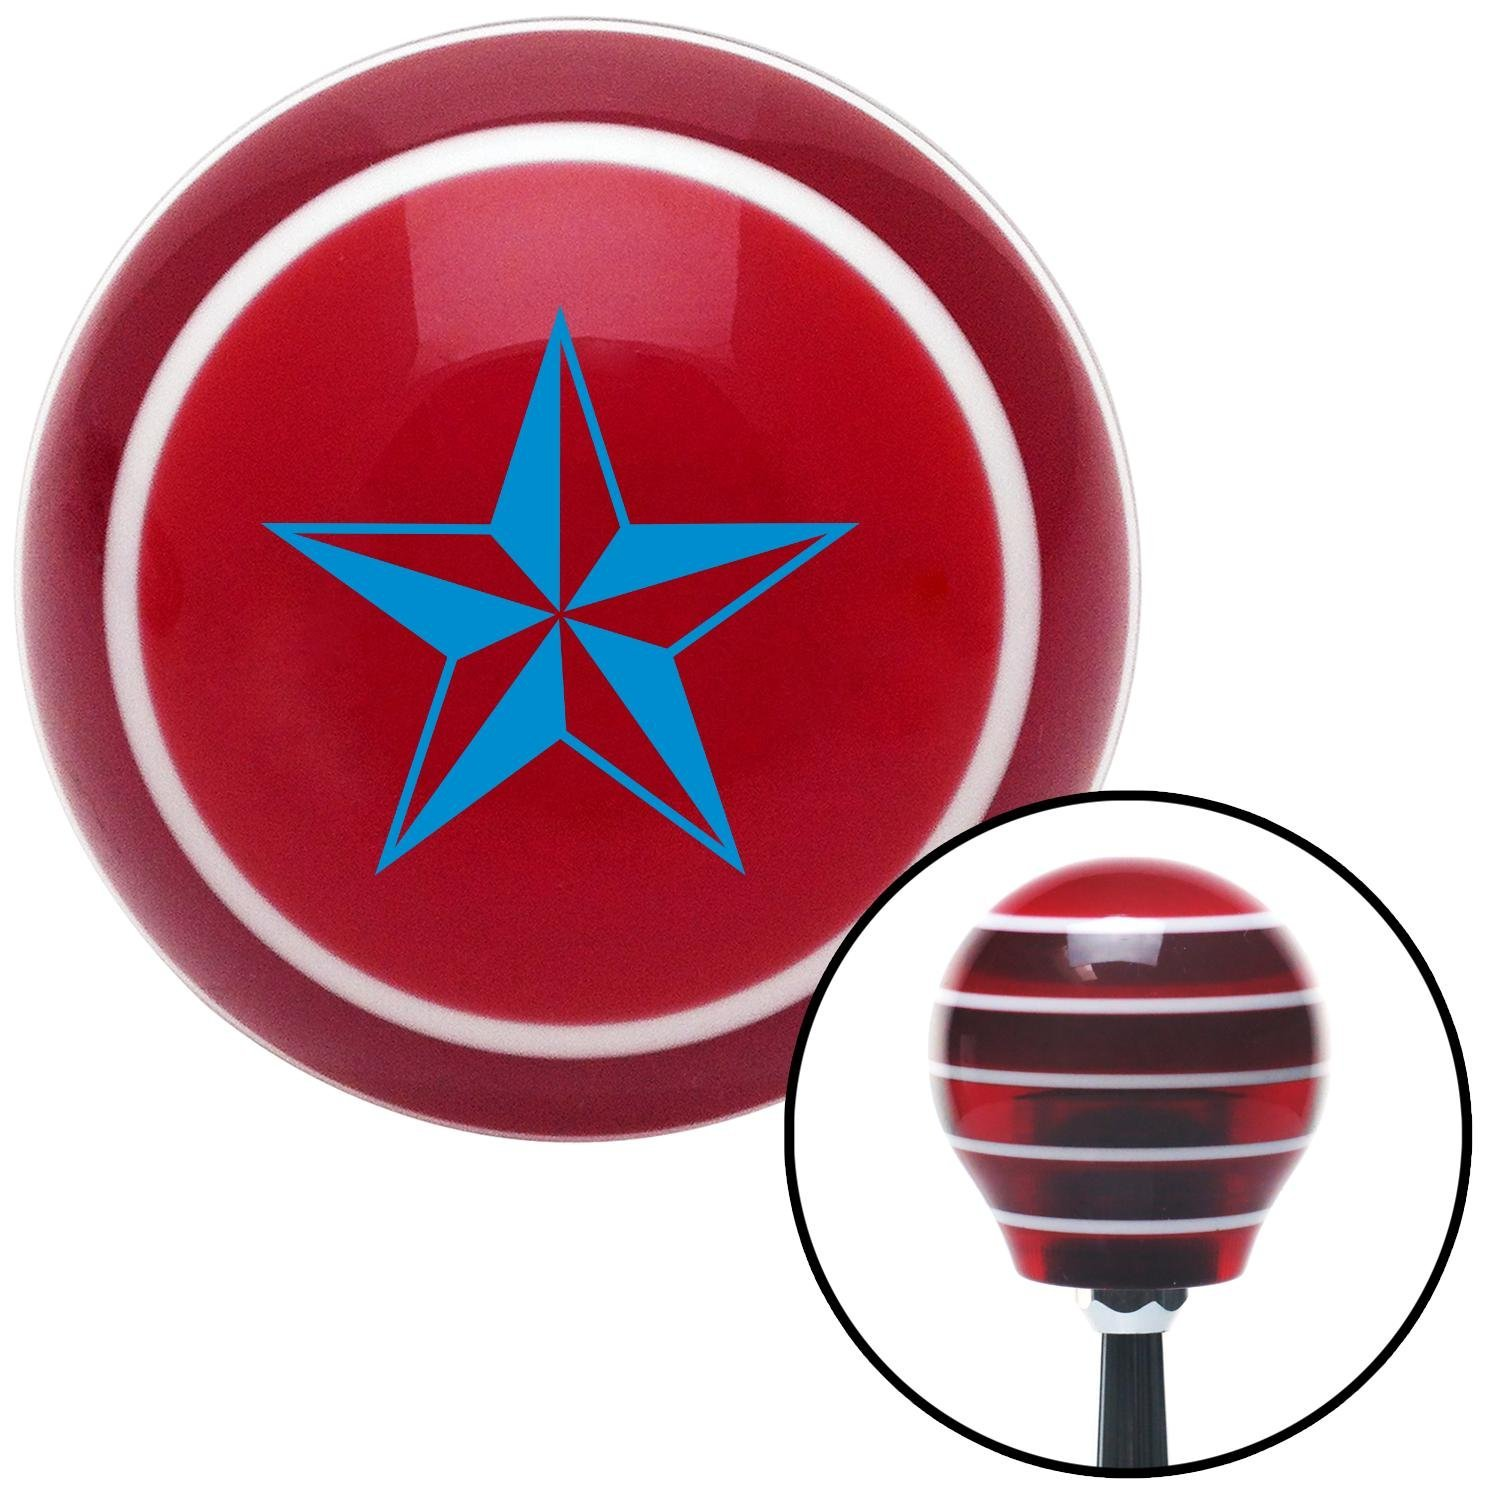 Blue 5 Point 3-D Star American Shifter 118888 Red Stripe Shift Knob with M16 x 1.5 Insert